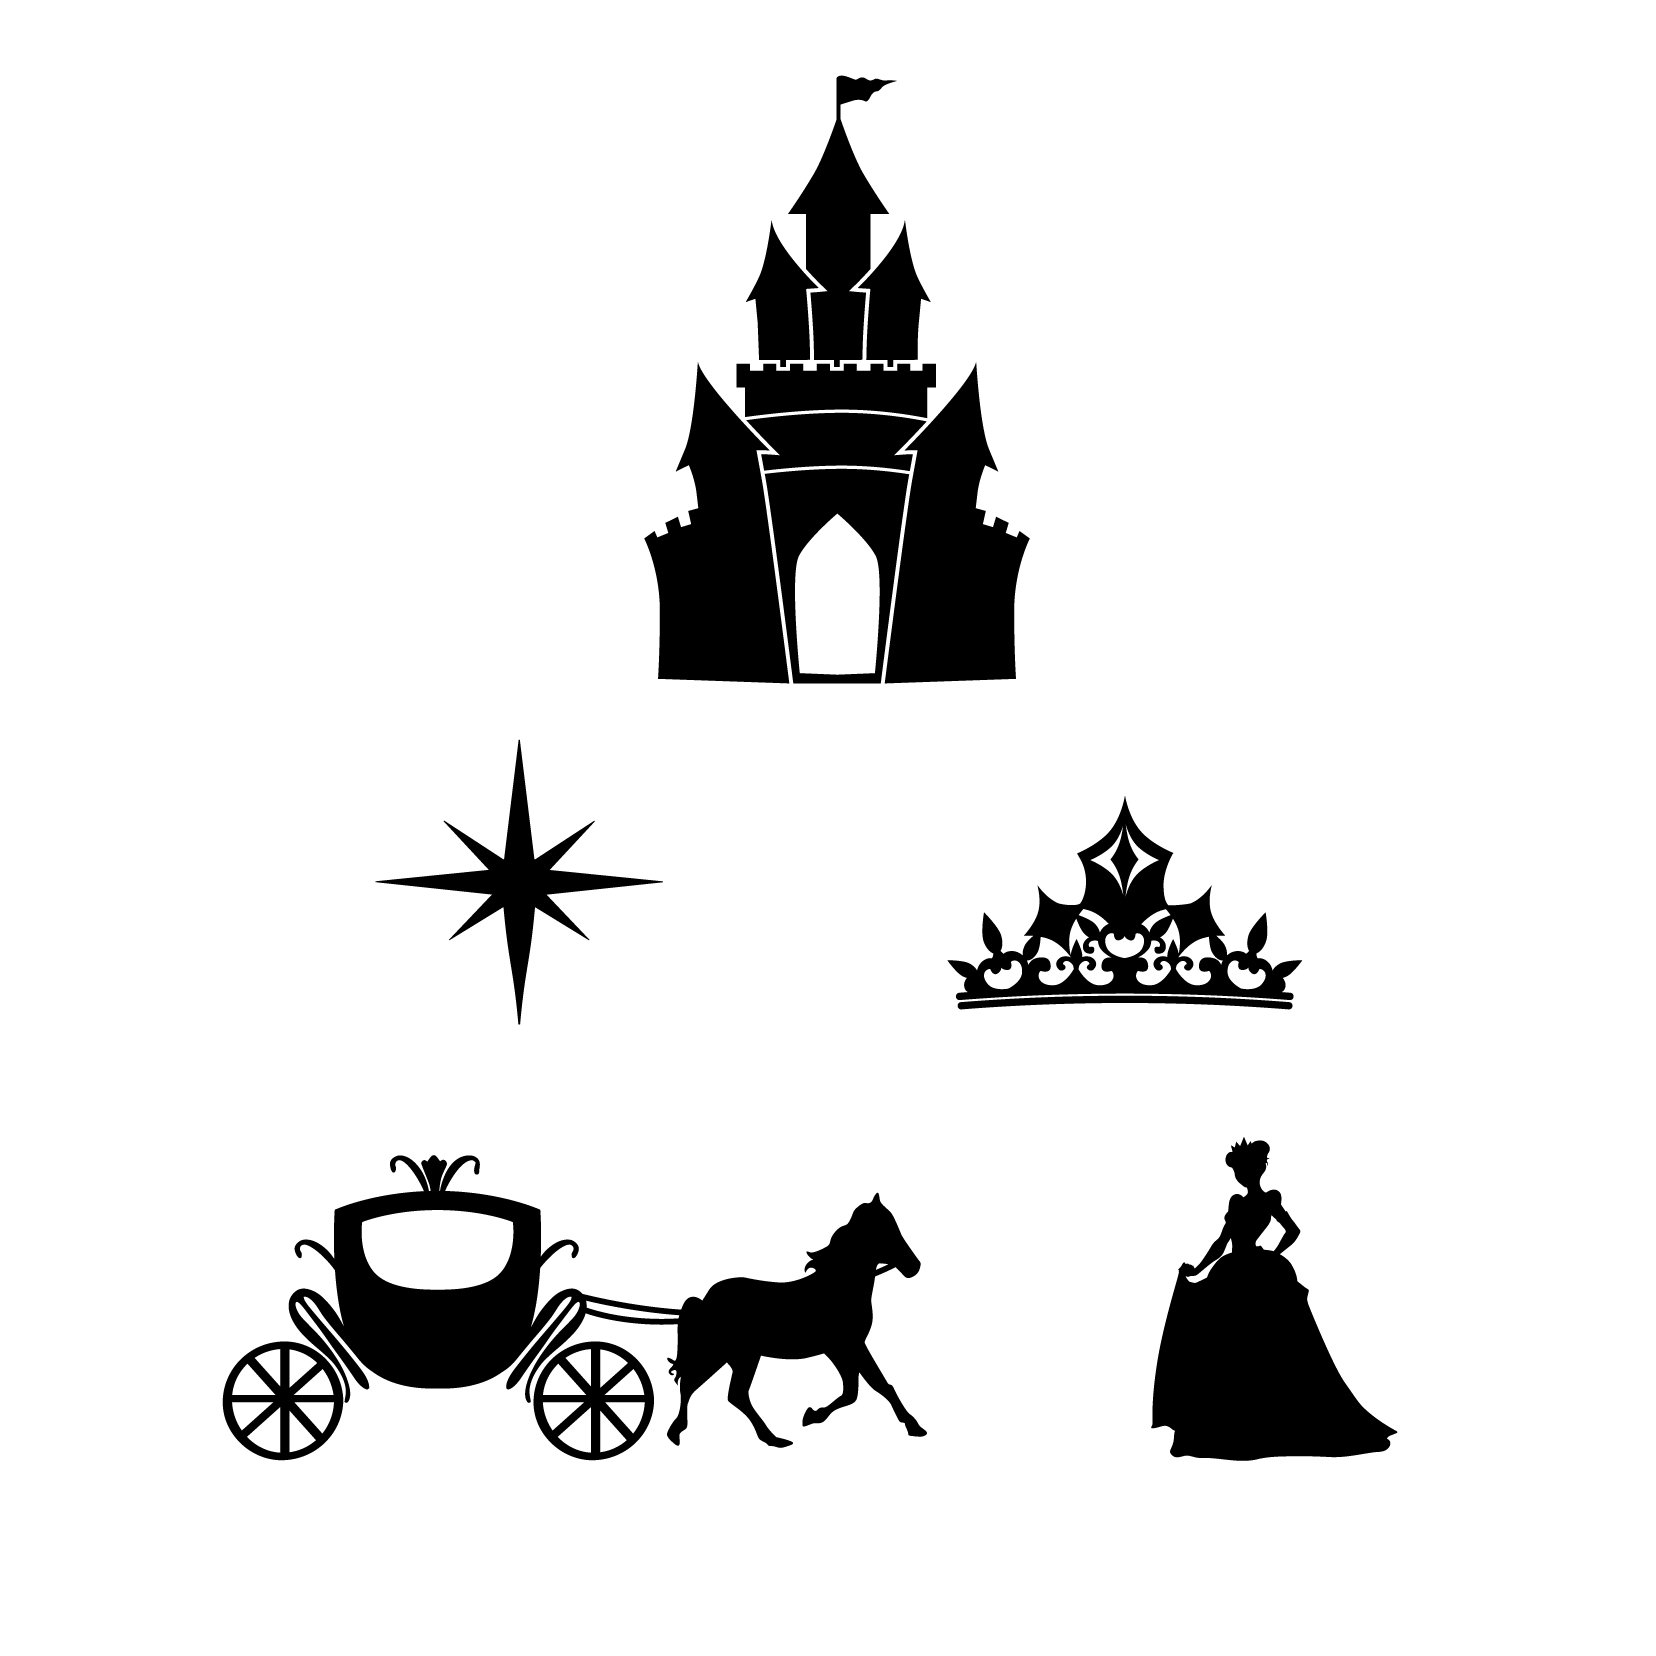 Princess Icons - 10 sets, 50 icons, Black - Vinyl Wall Art Decal for Homes, Offices, Kids Rooms, Nurseries, Schools, High Schools, Colleges, Universities, Interior Designers, Architects, Remodelers